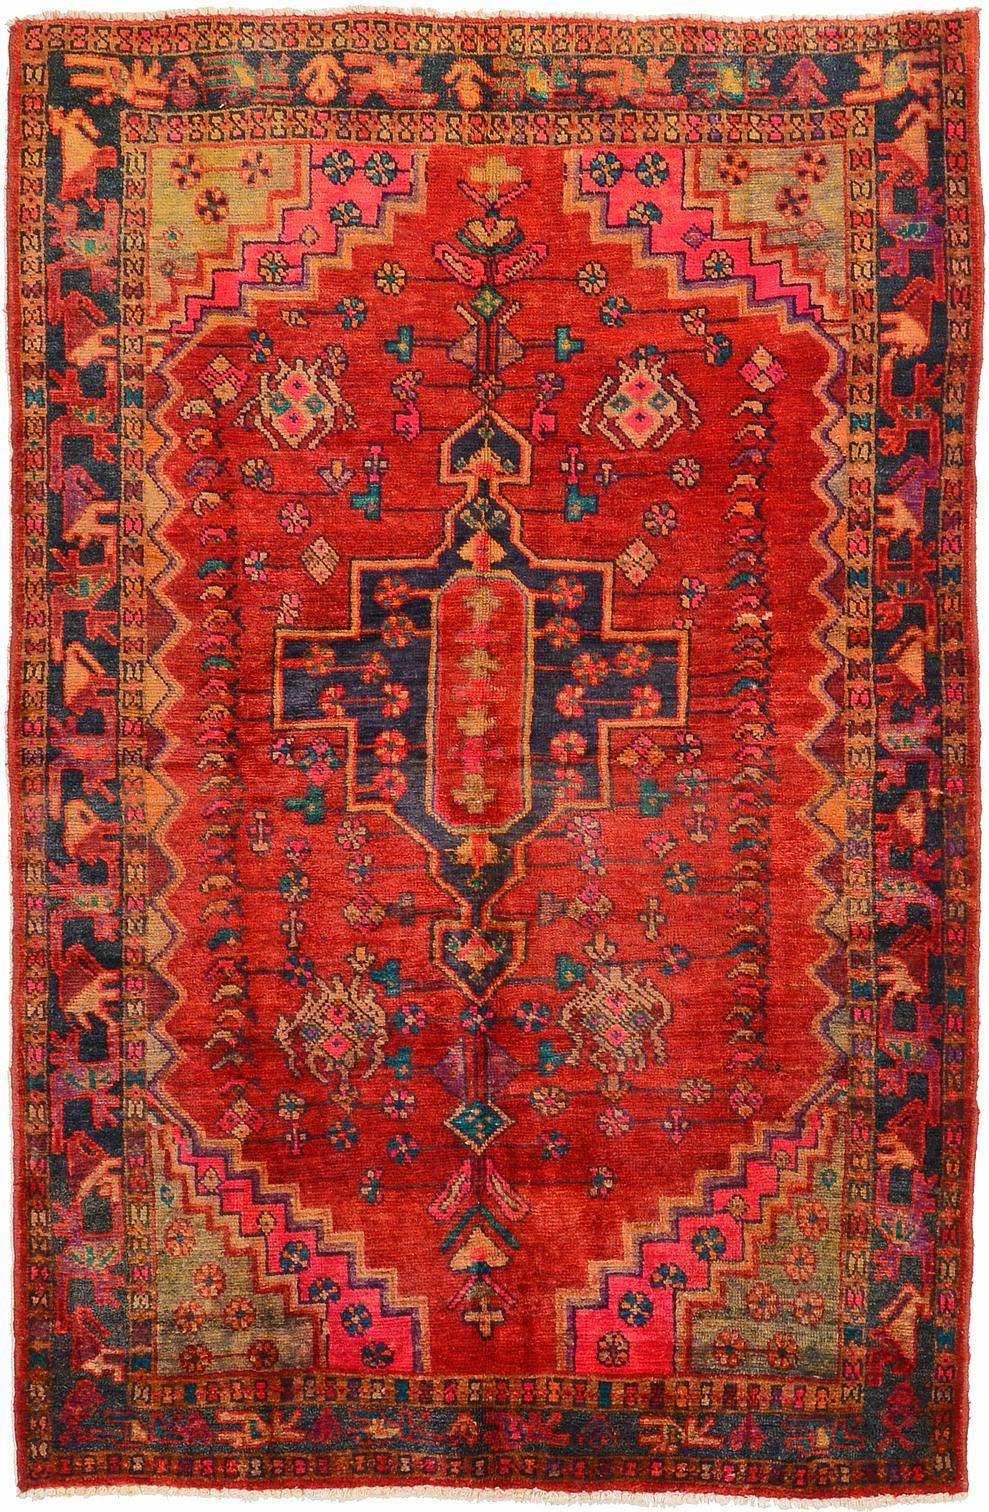 appealing living room persian carpet | Red 5' 1 x 7' 9 Hamedan Rug | Persian Rugs | eSaleRugs